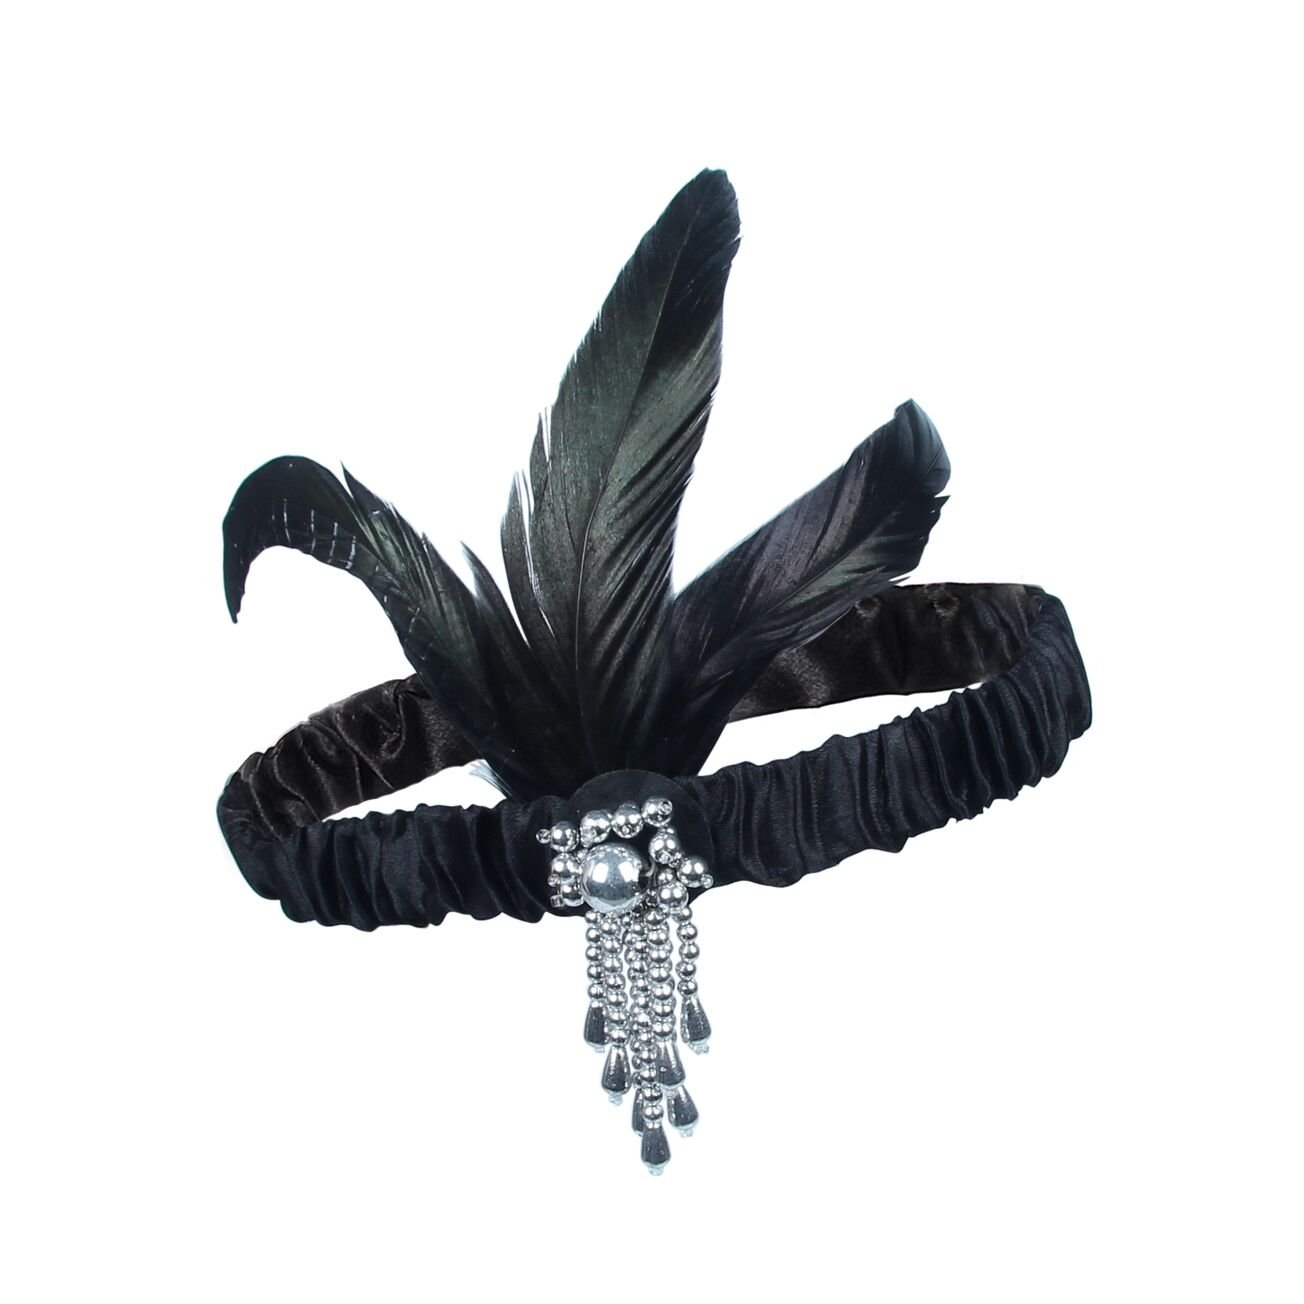 ResPai 1920s Accessories Fashion Set Roaring 20\'s Great Gatsby Theme Party Flapper Headband Headpiece Long Black Gloves Necklace Cigarette Holder Costume Accessories For Women (Elizabeth)